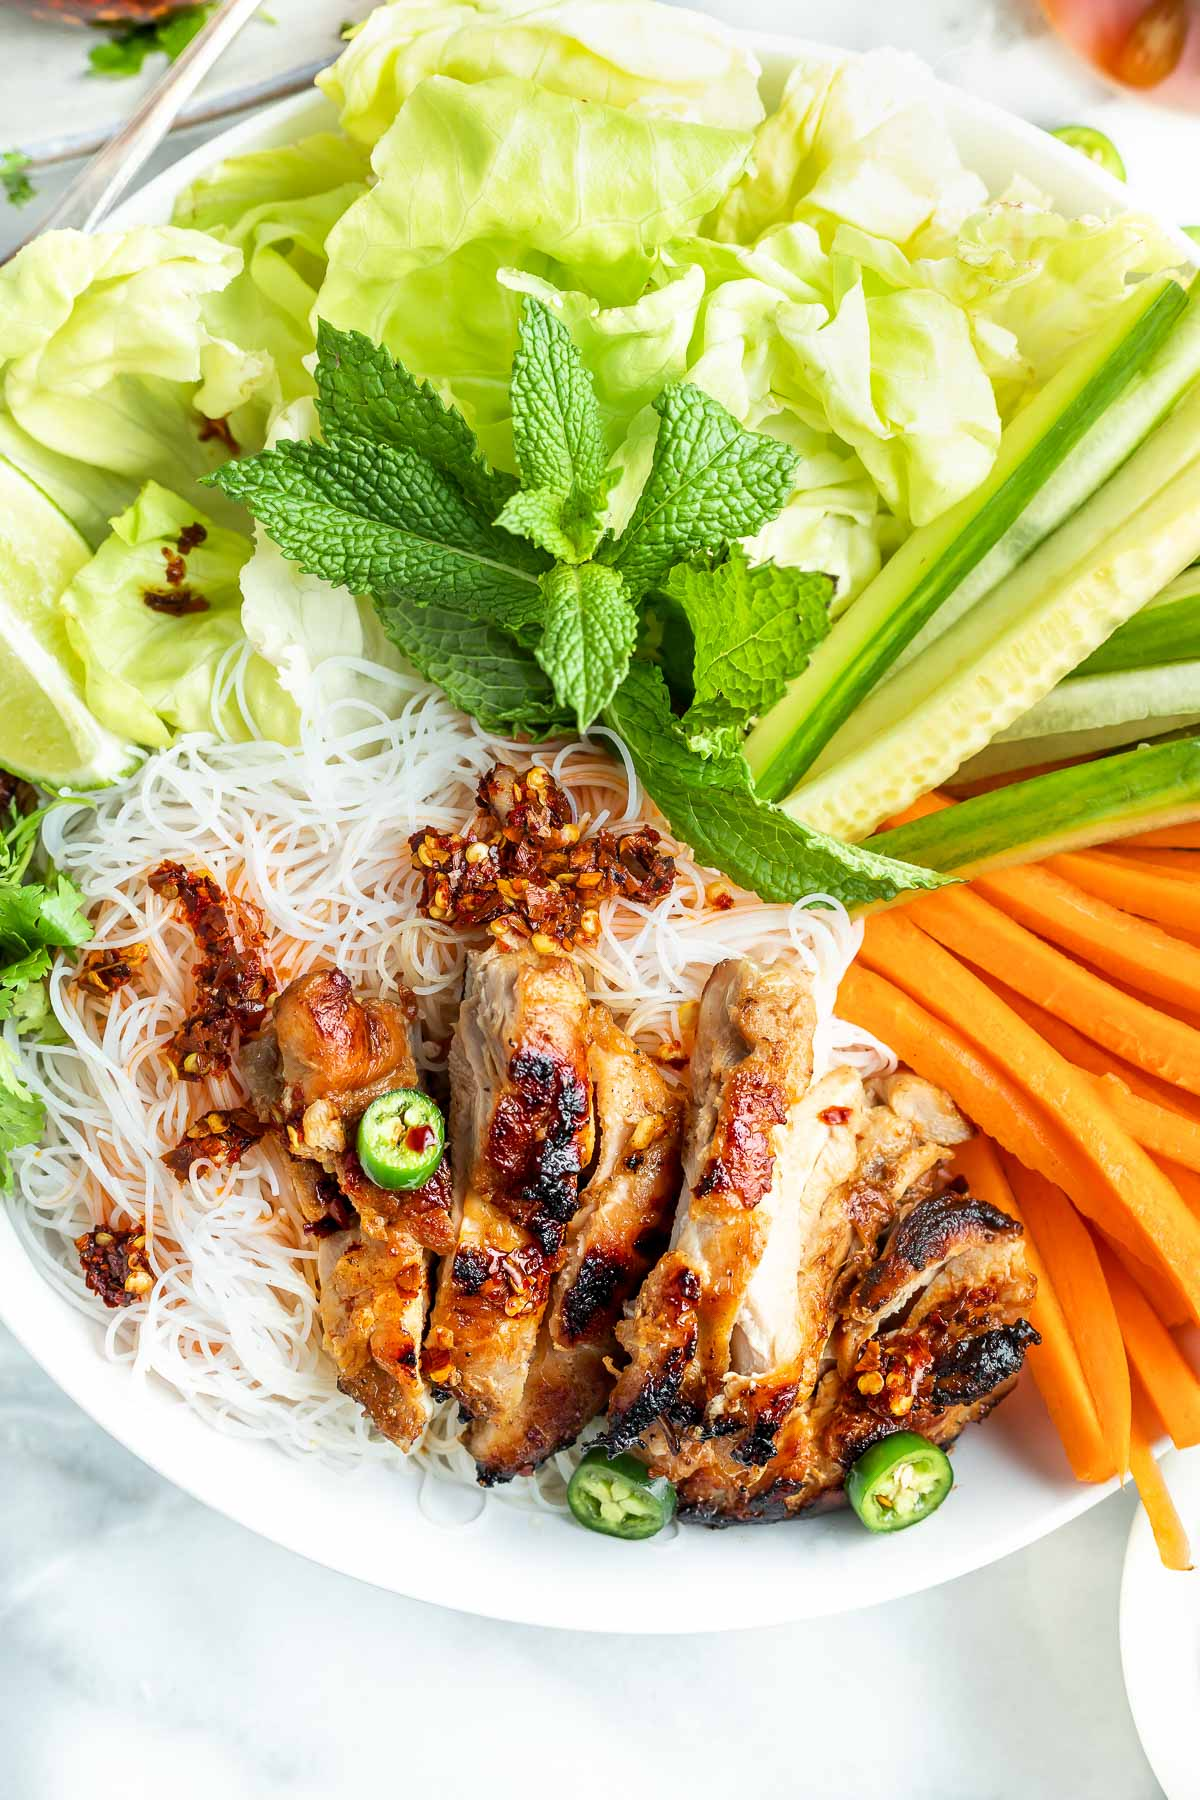 sliced cooked chicken with Vietnamese salad